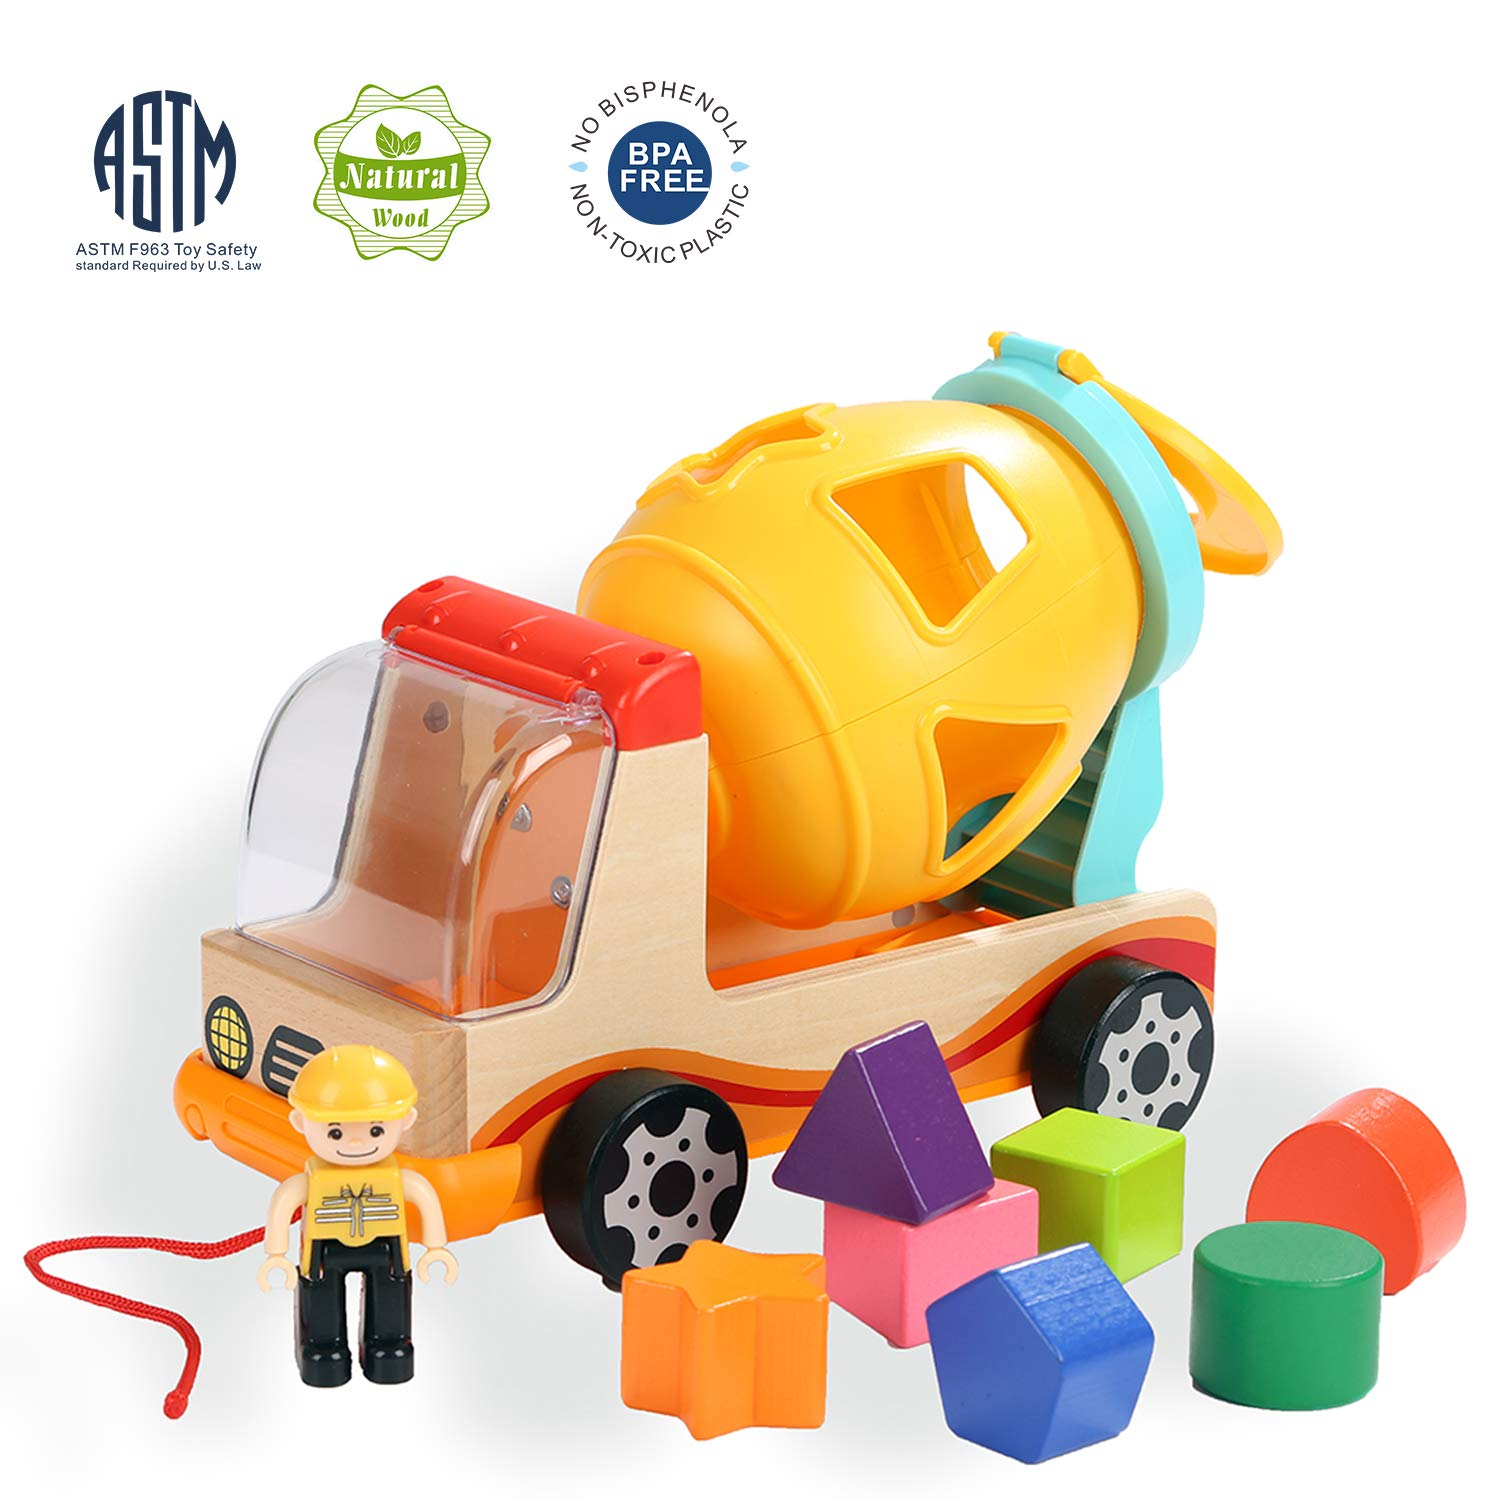 TOP BRIGHT Shape Sorter Developmental Toys for Toddlers Learning Sort and Match with 7 Shapes